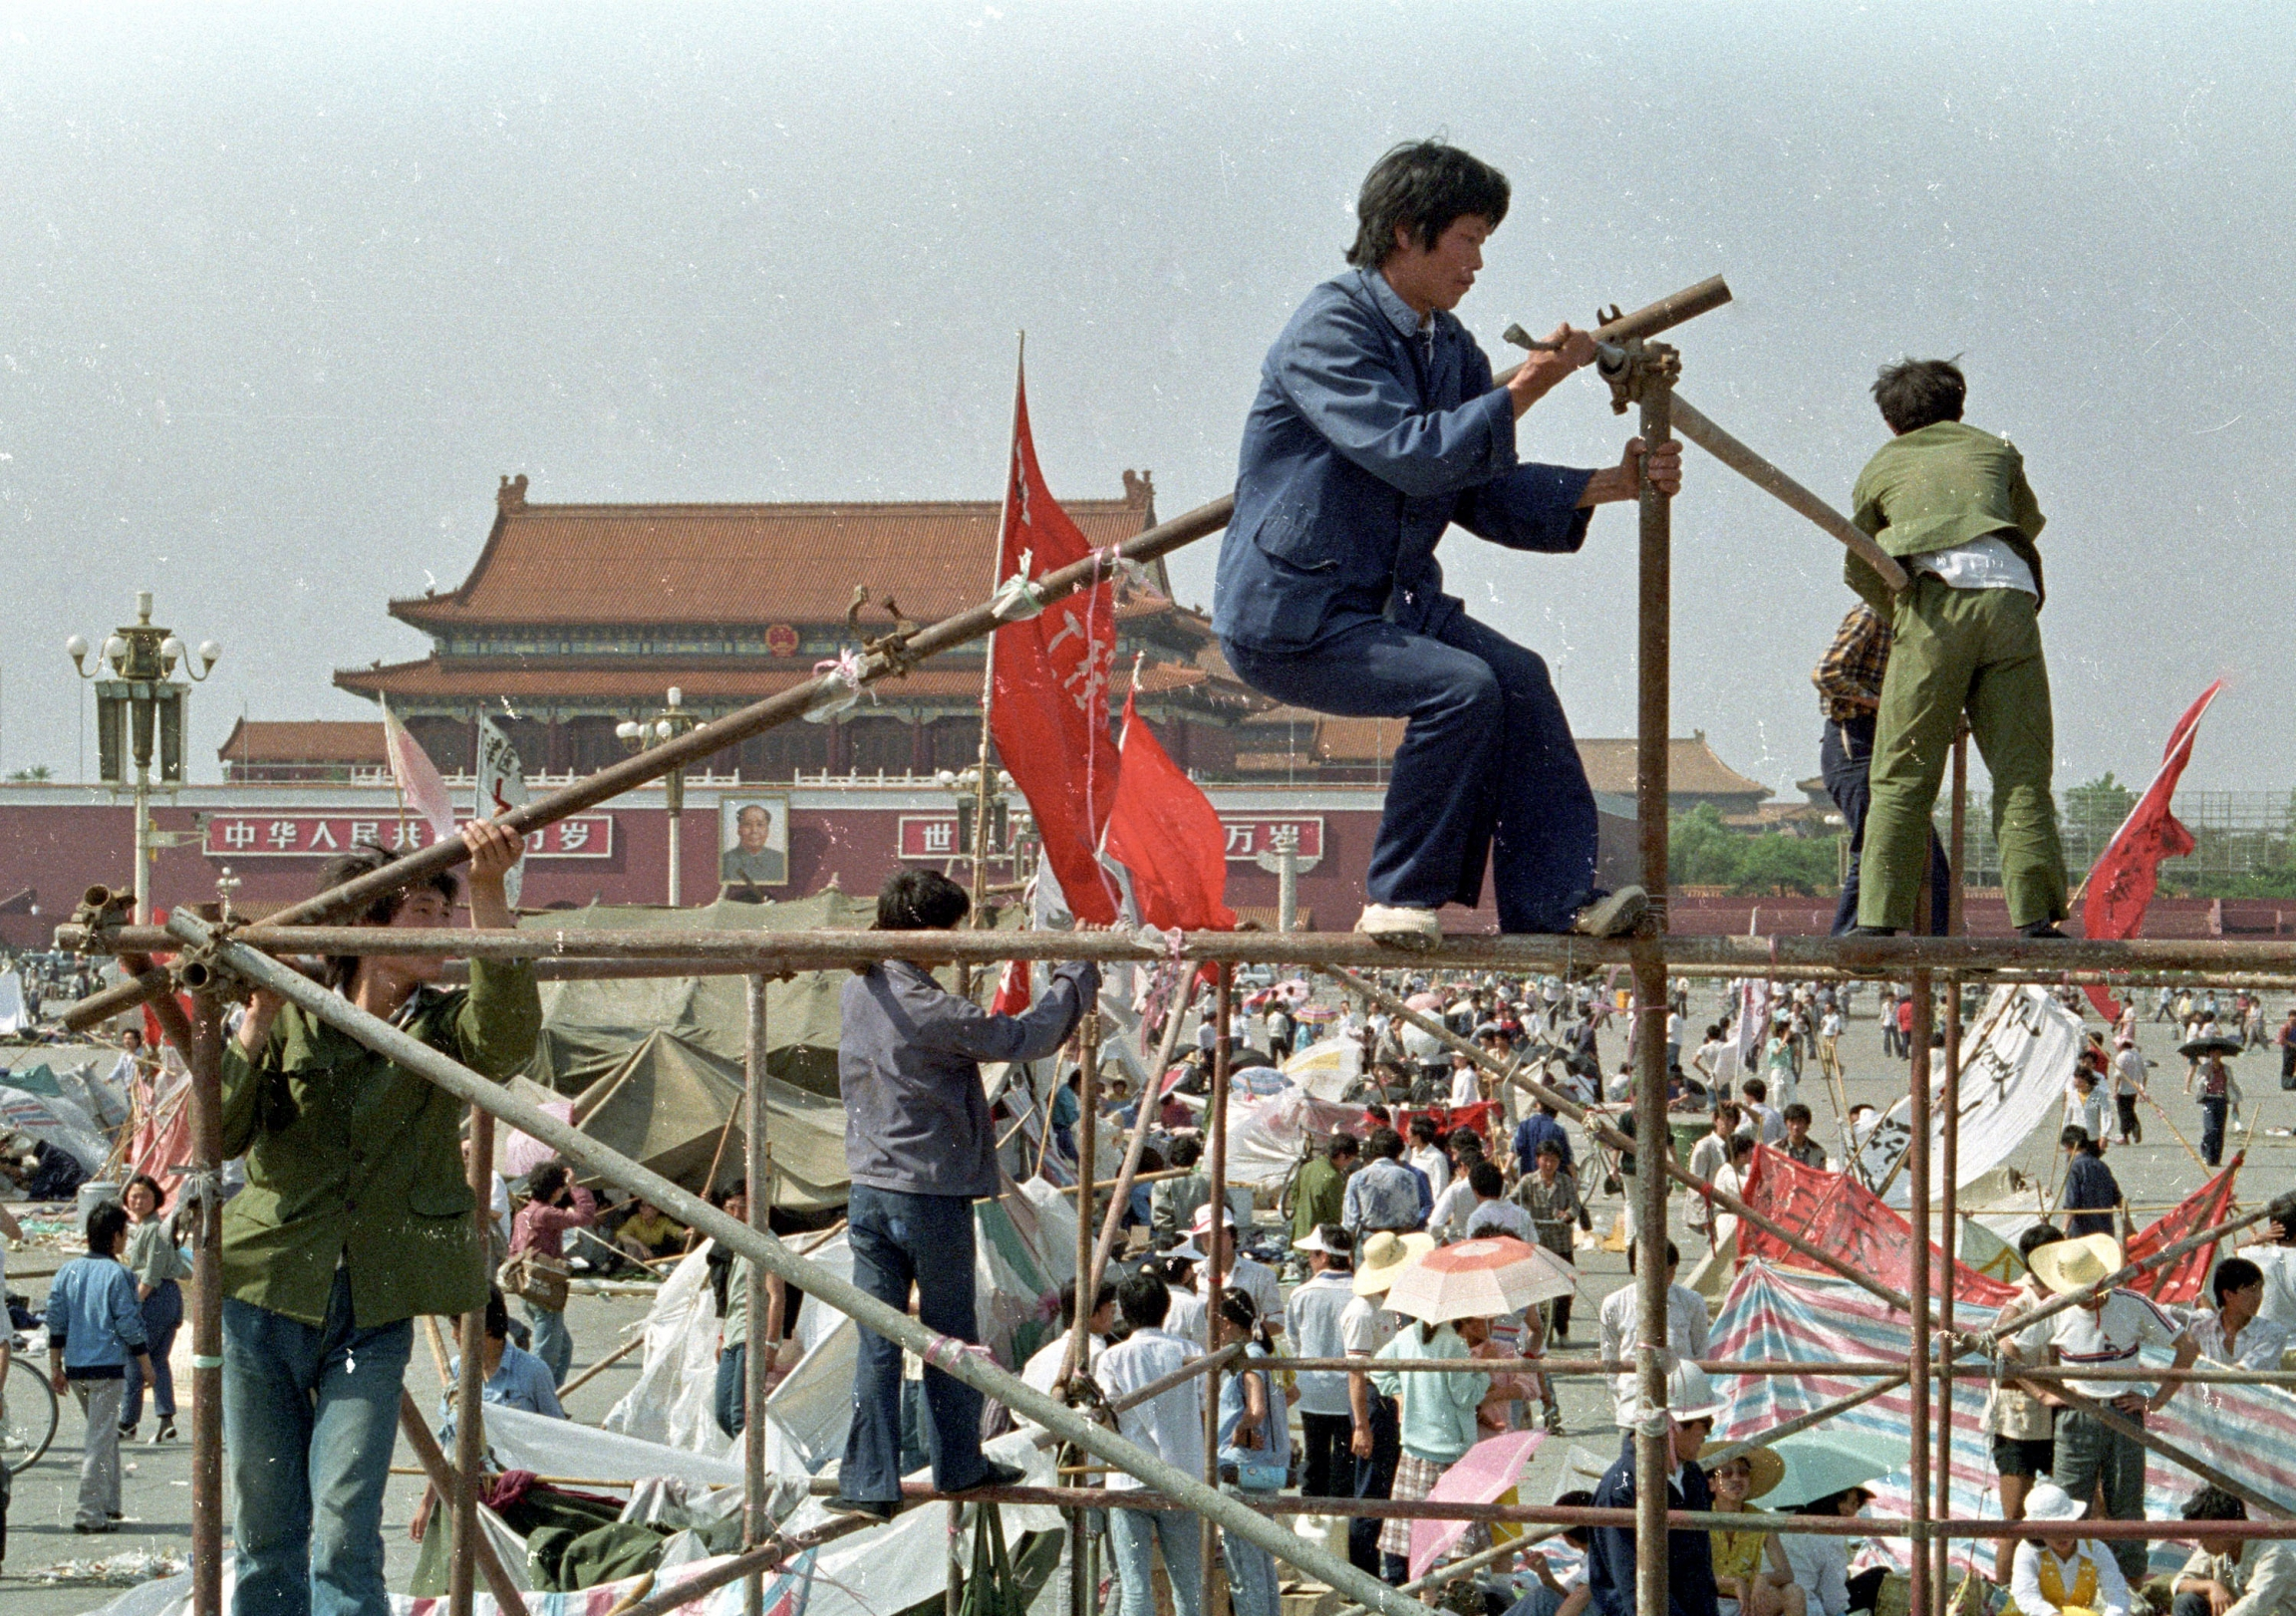 Students prop up wooden poles to build tents in Tiananmen Square.